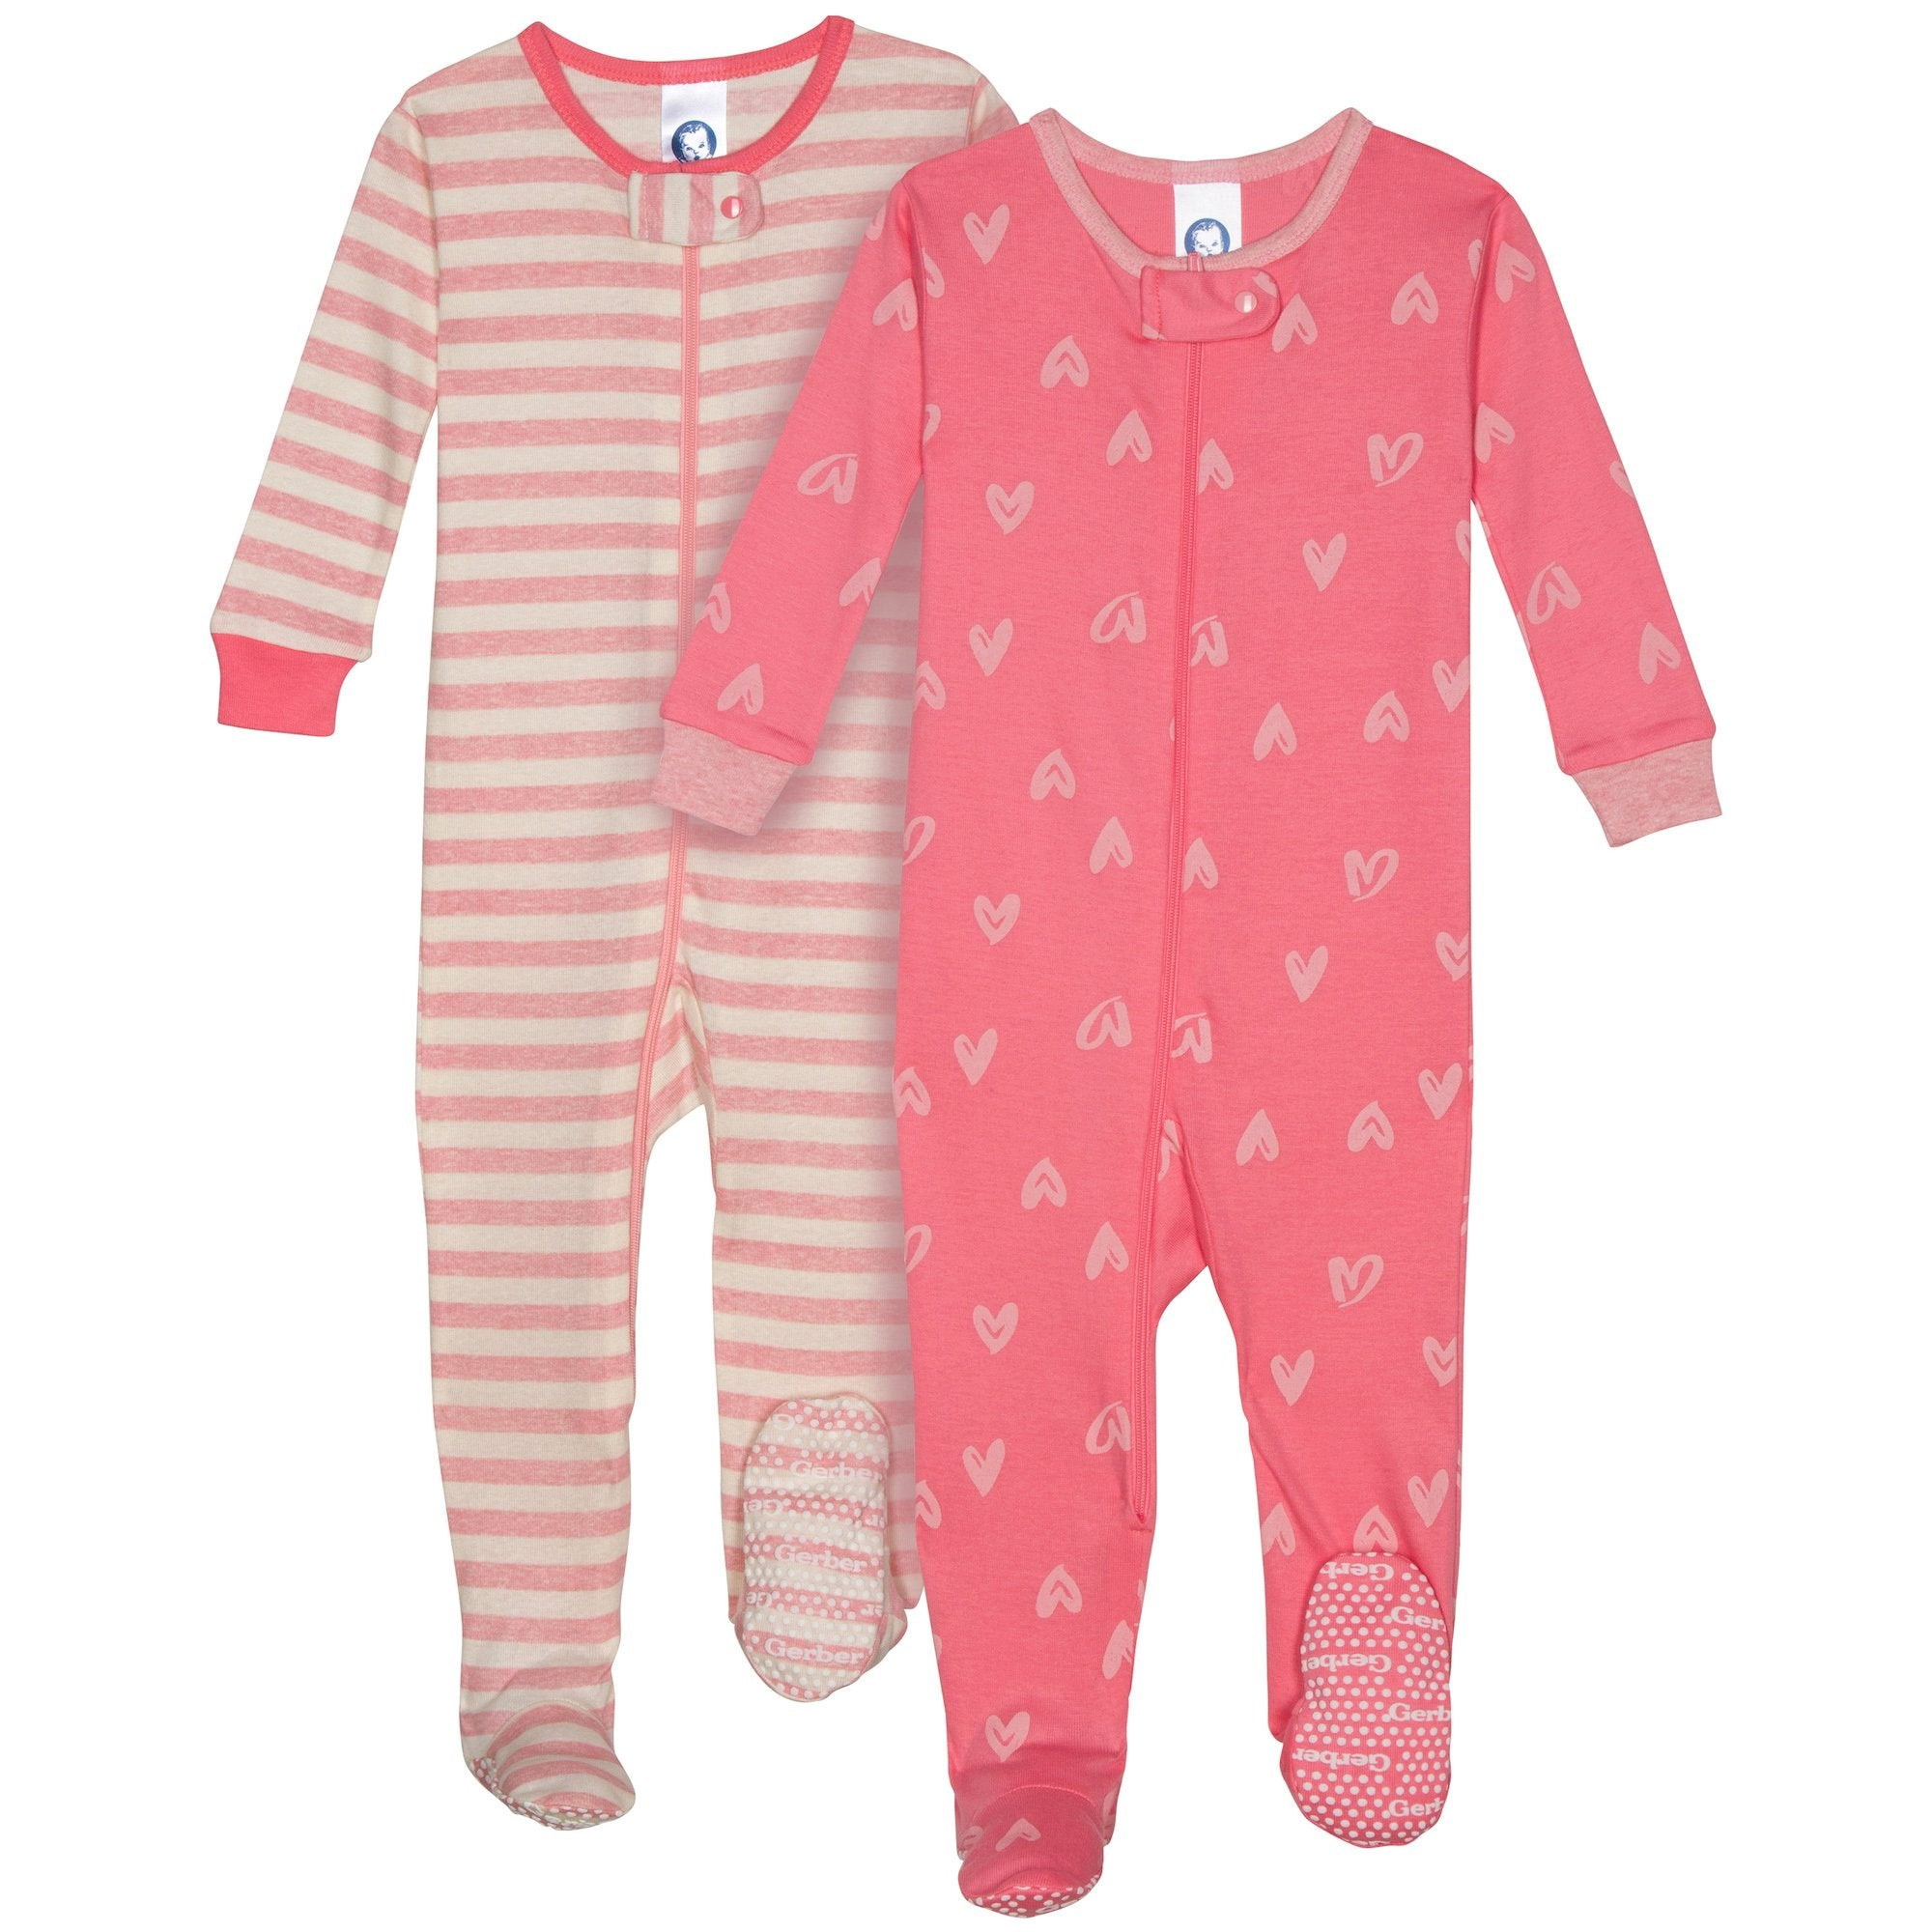 2-Pack Girls Organic Footed Heart Pajamas